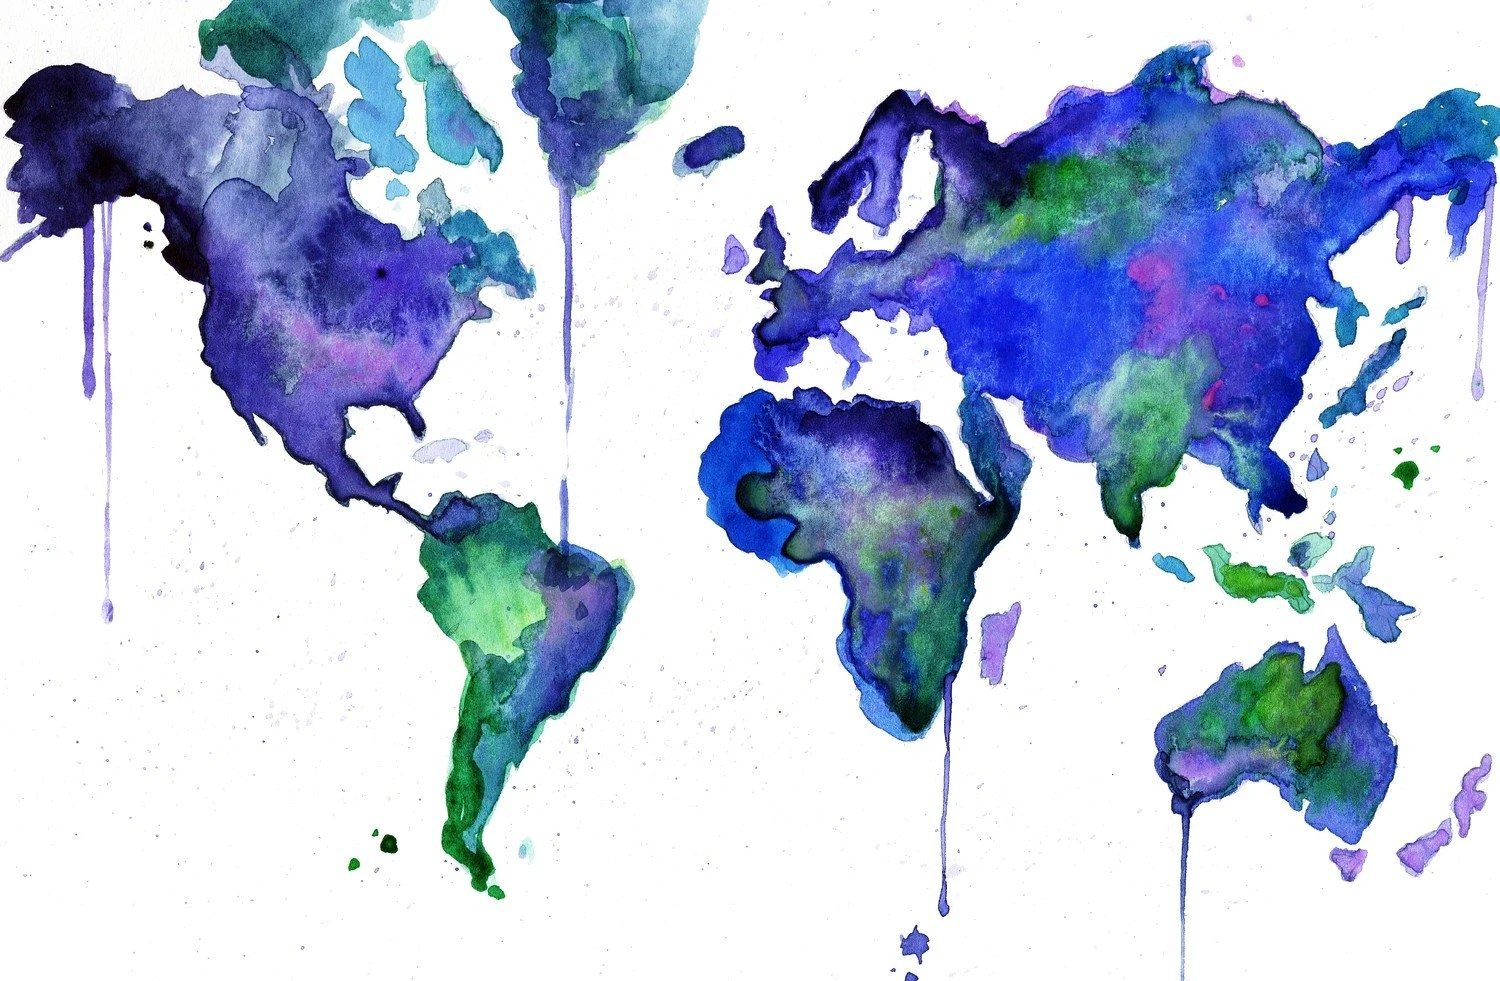 Watercolor World Map Illustration: Earth in Technicolor print